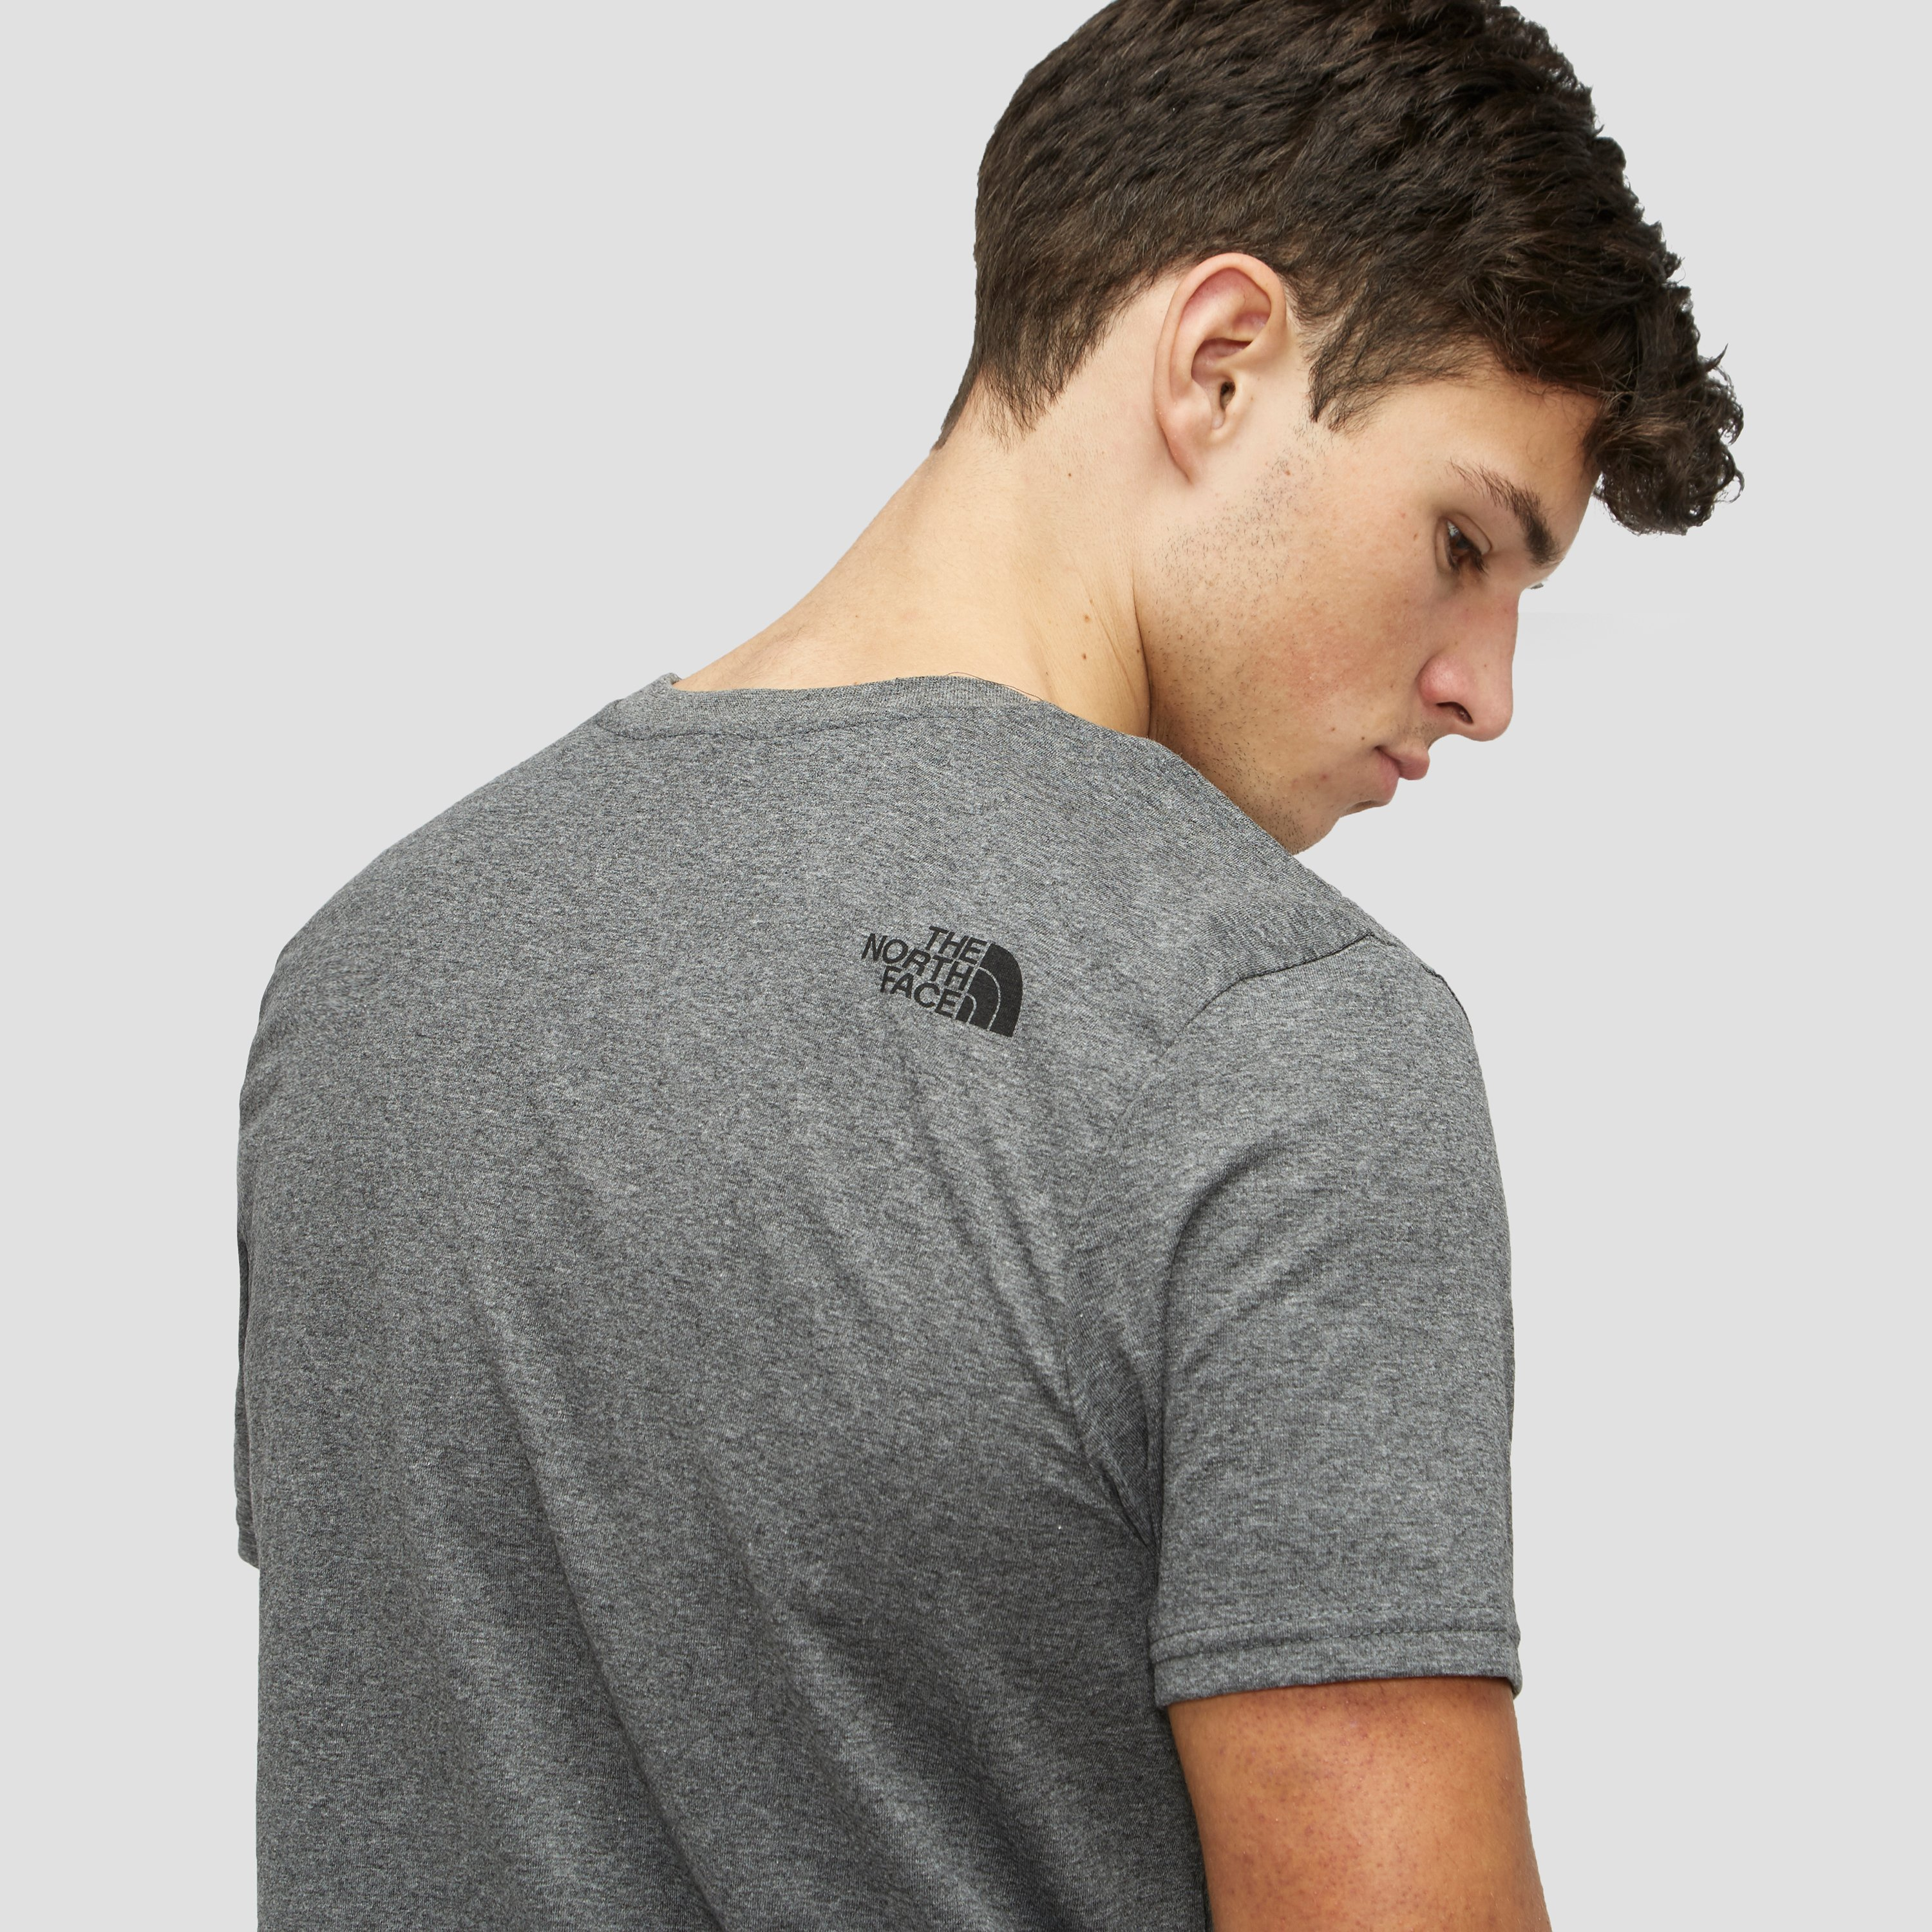 THE NORTH FACE SIMPLE DOME SHIRT GRIJS HEREN